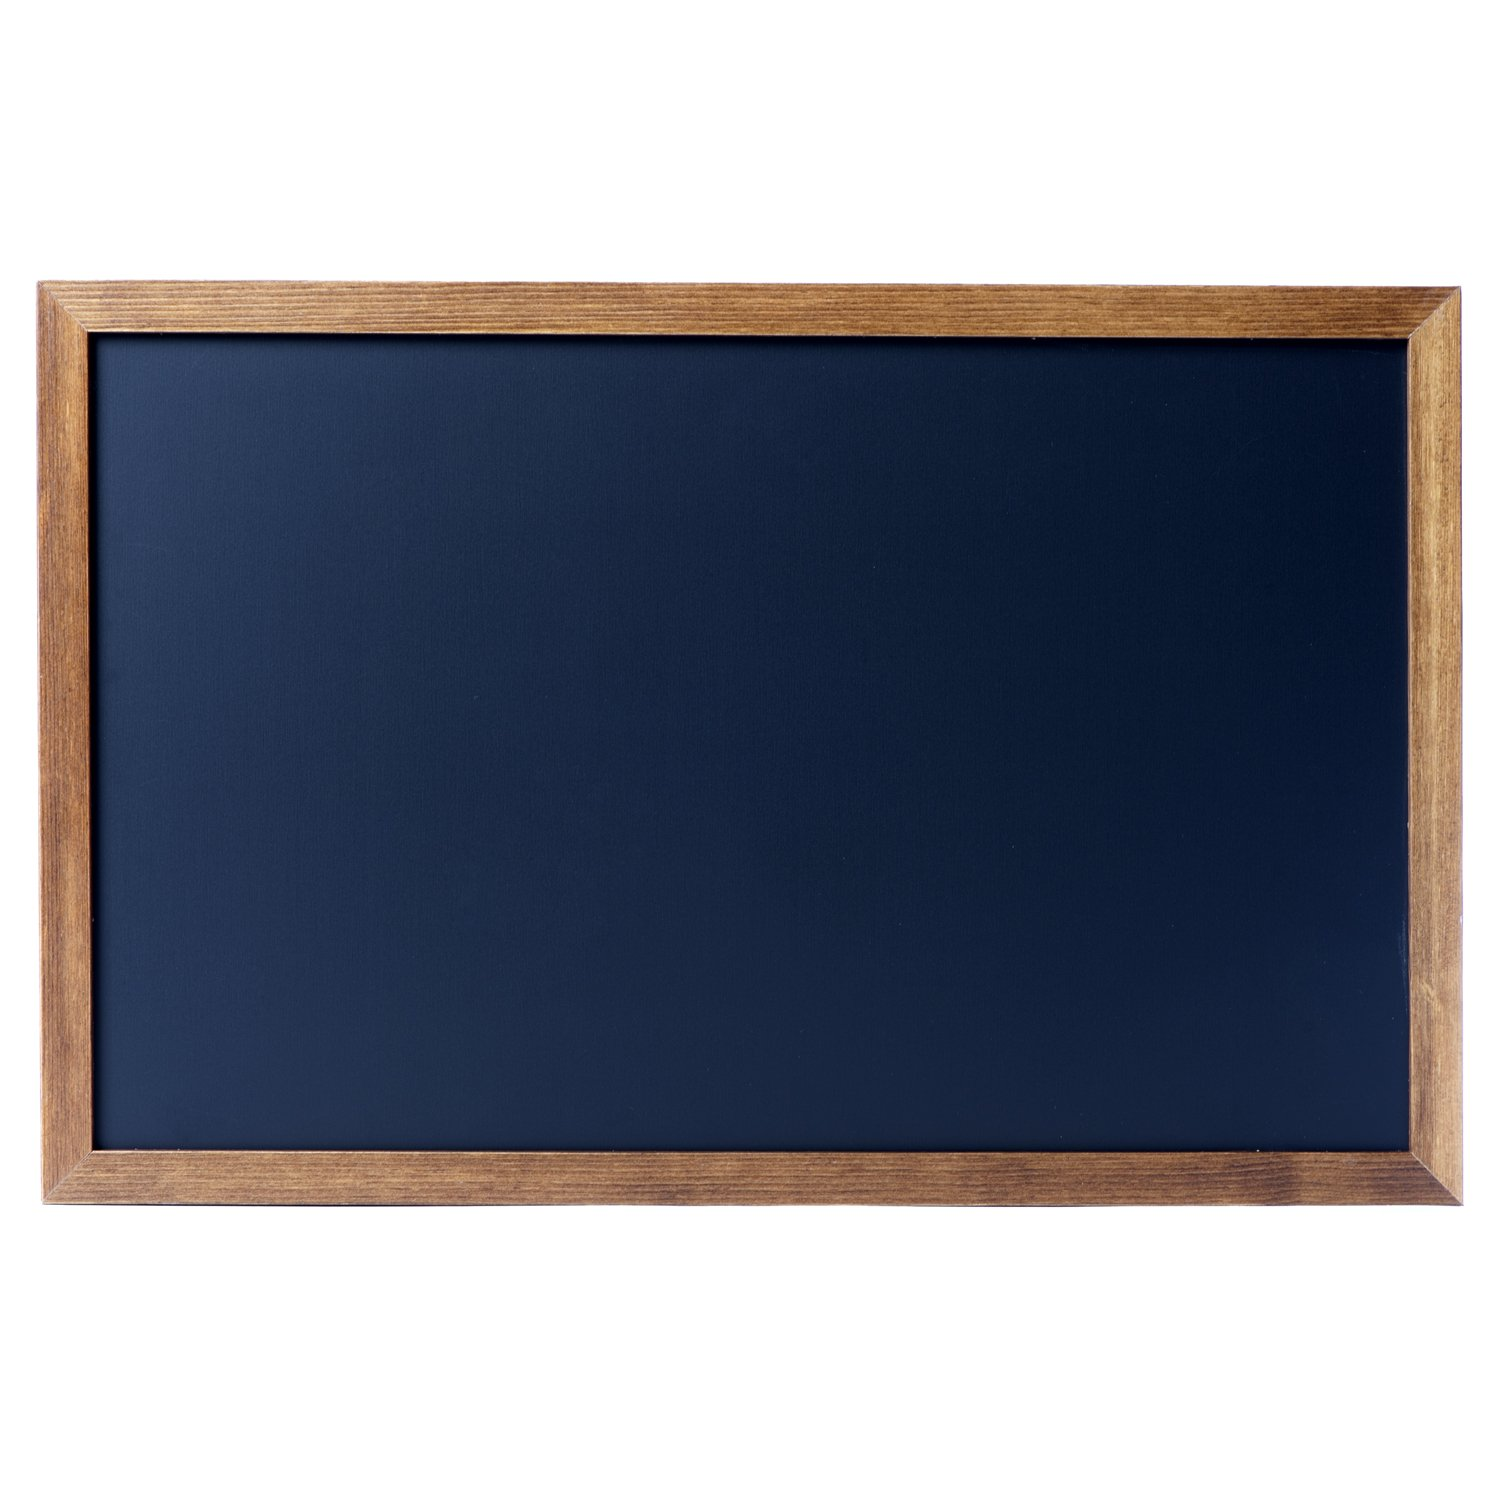 Cedar Markers 17''x11'' Chalkboard With Wooden Frame. 100% Non-Porous Erasable Blackboard and Whiteboard For Liquid Chalk Markers. Magnet Board Decorative Bulletin Board for Every Event (17x11)